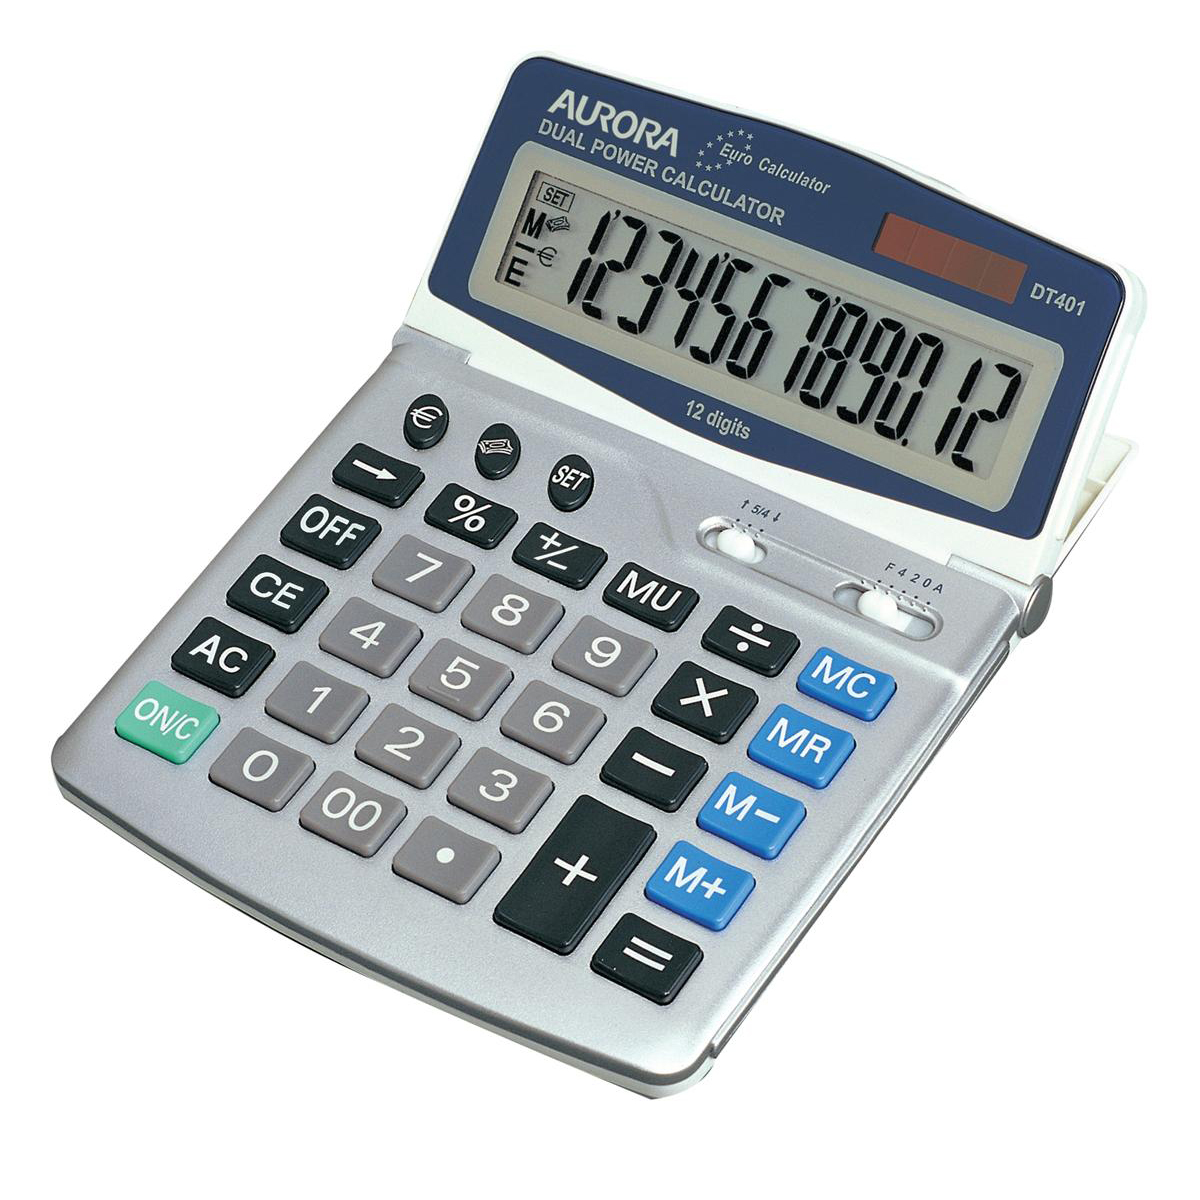 Desktop Calculator Aurora Desktop Calculator 12 Digit 4 Key Memory Battery/Solar Power 165x32x228mm Grey Ref DT401